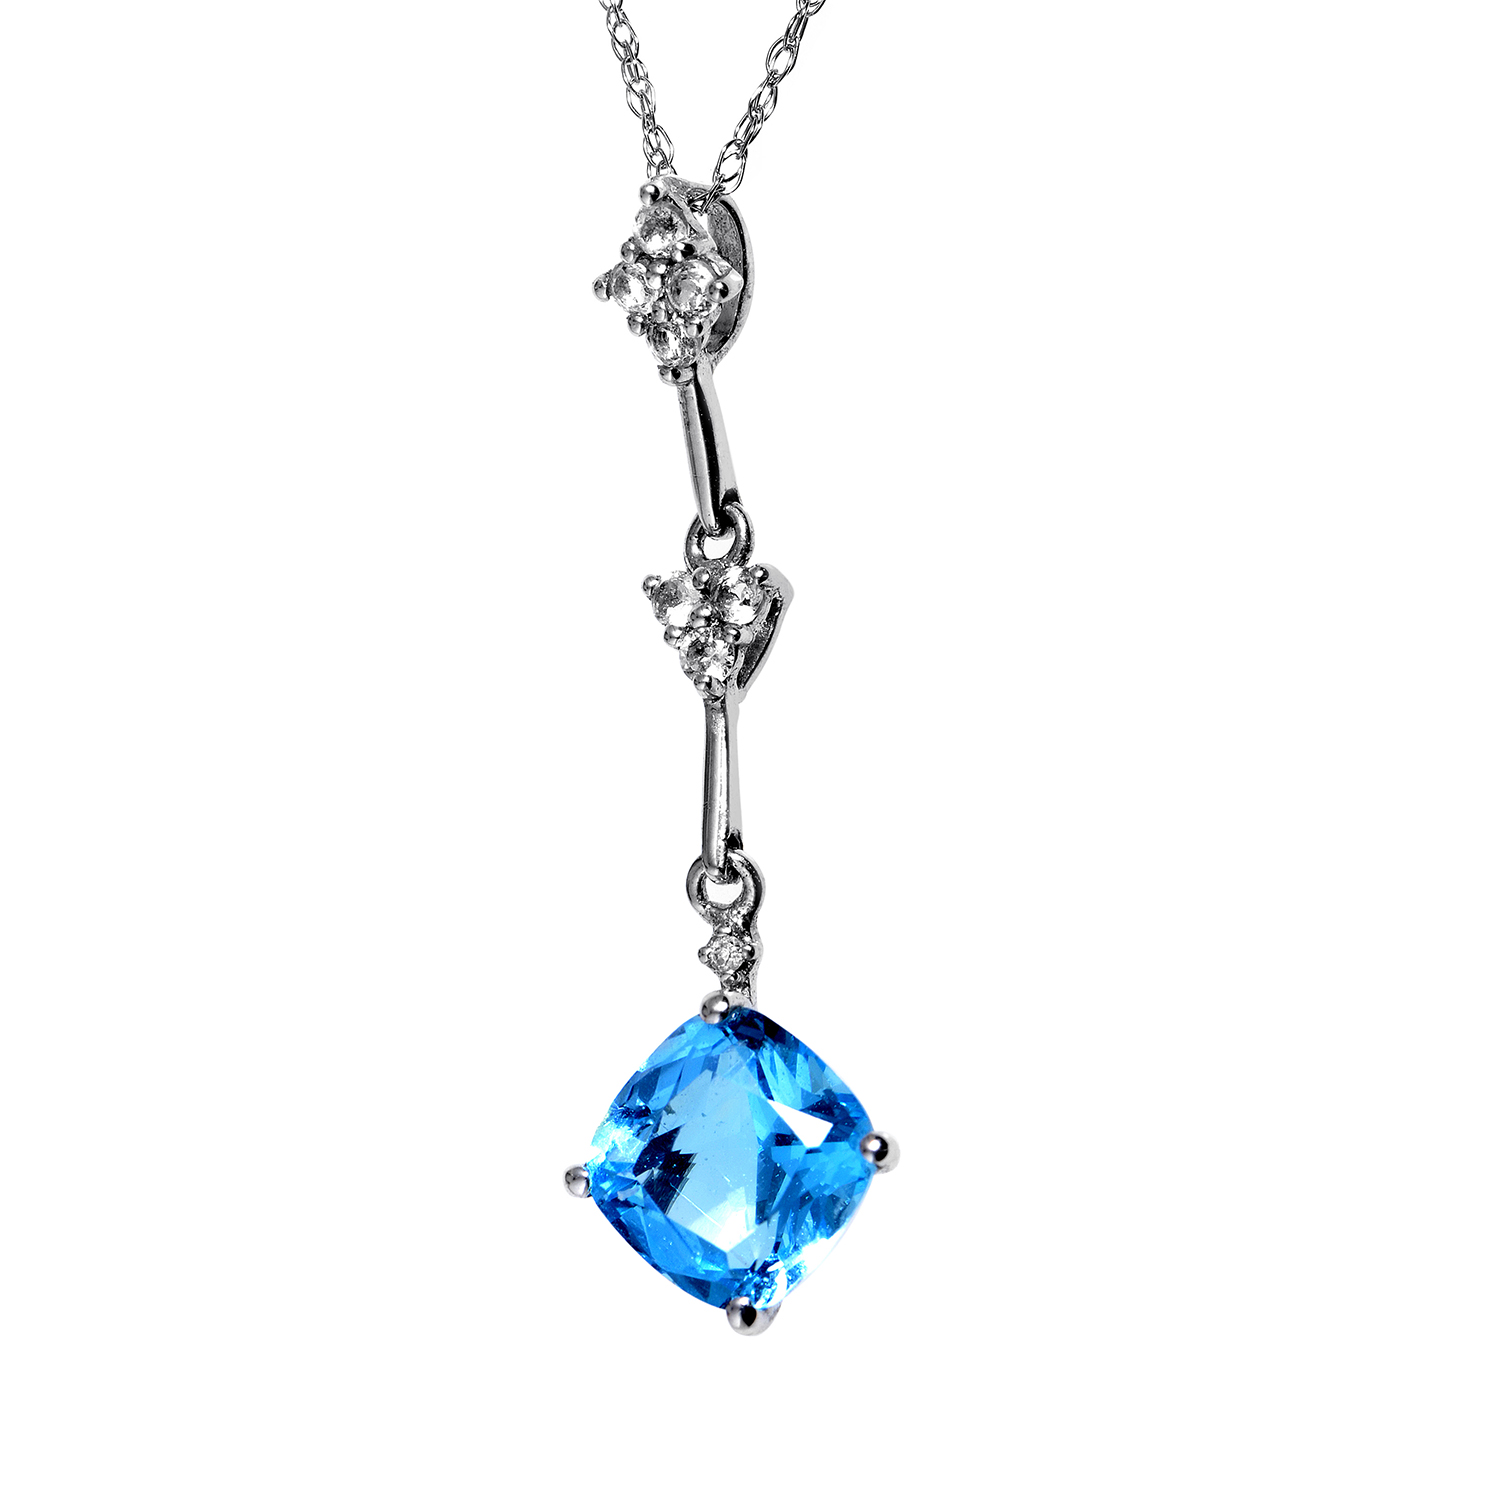 Women's 14K White Gold Diamond & Blue Topaz Pendant Necklace PD4-15180WTB